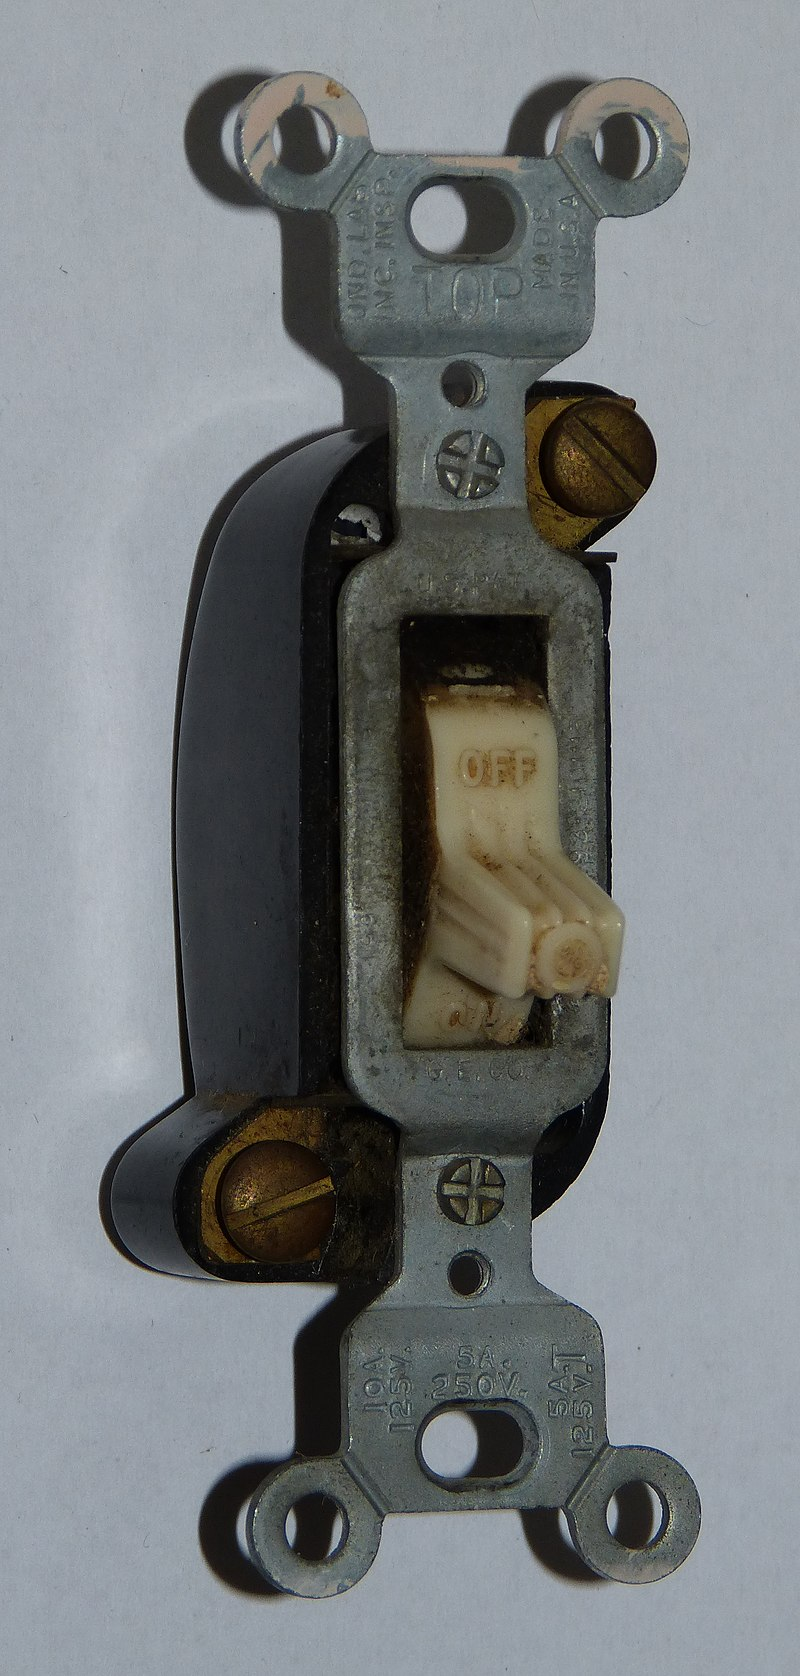 General-Electric-silent-T-rated-light-switch.jpg